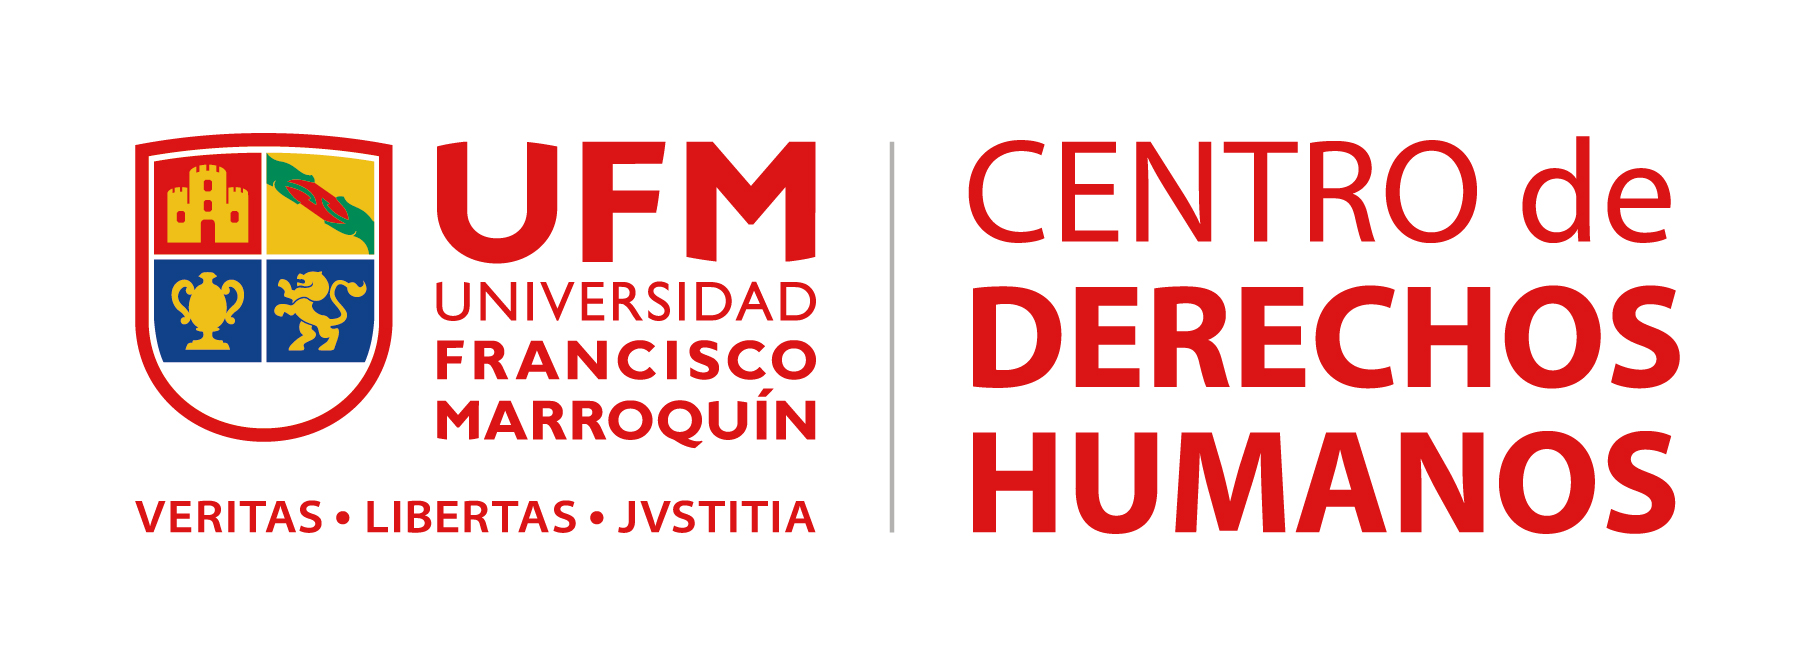 Derechos Humanos | Universidad Francisco Marroquín